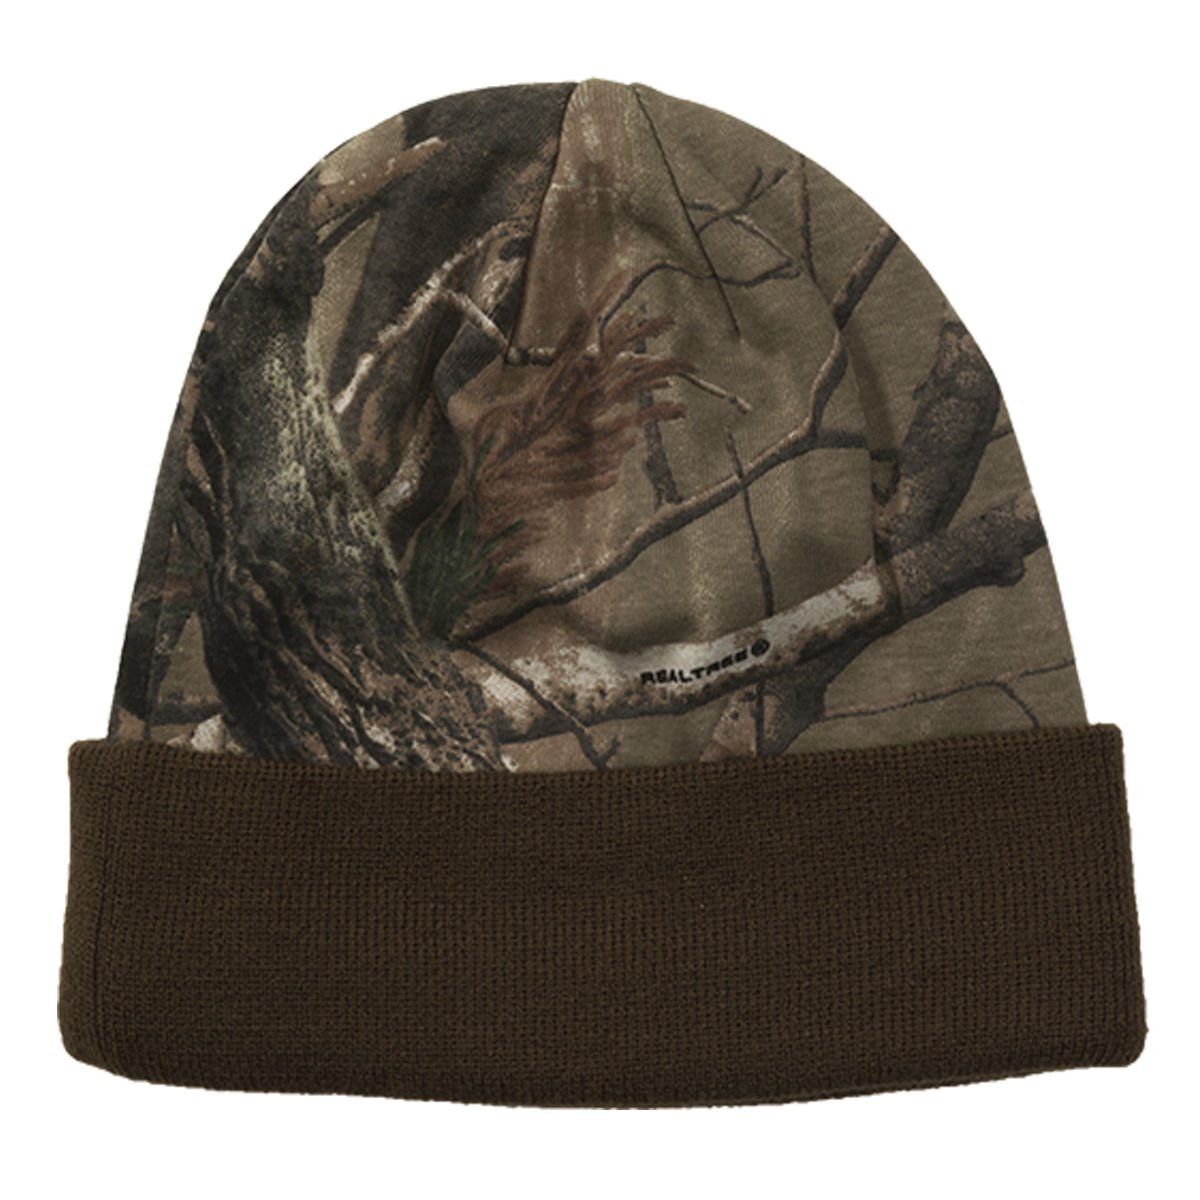 Realtree Licensed Camo Knit Cuff Beanie Brown by Realtree